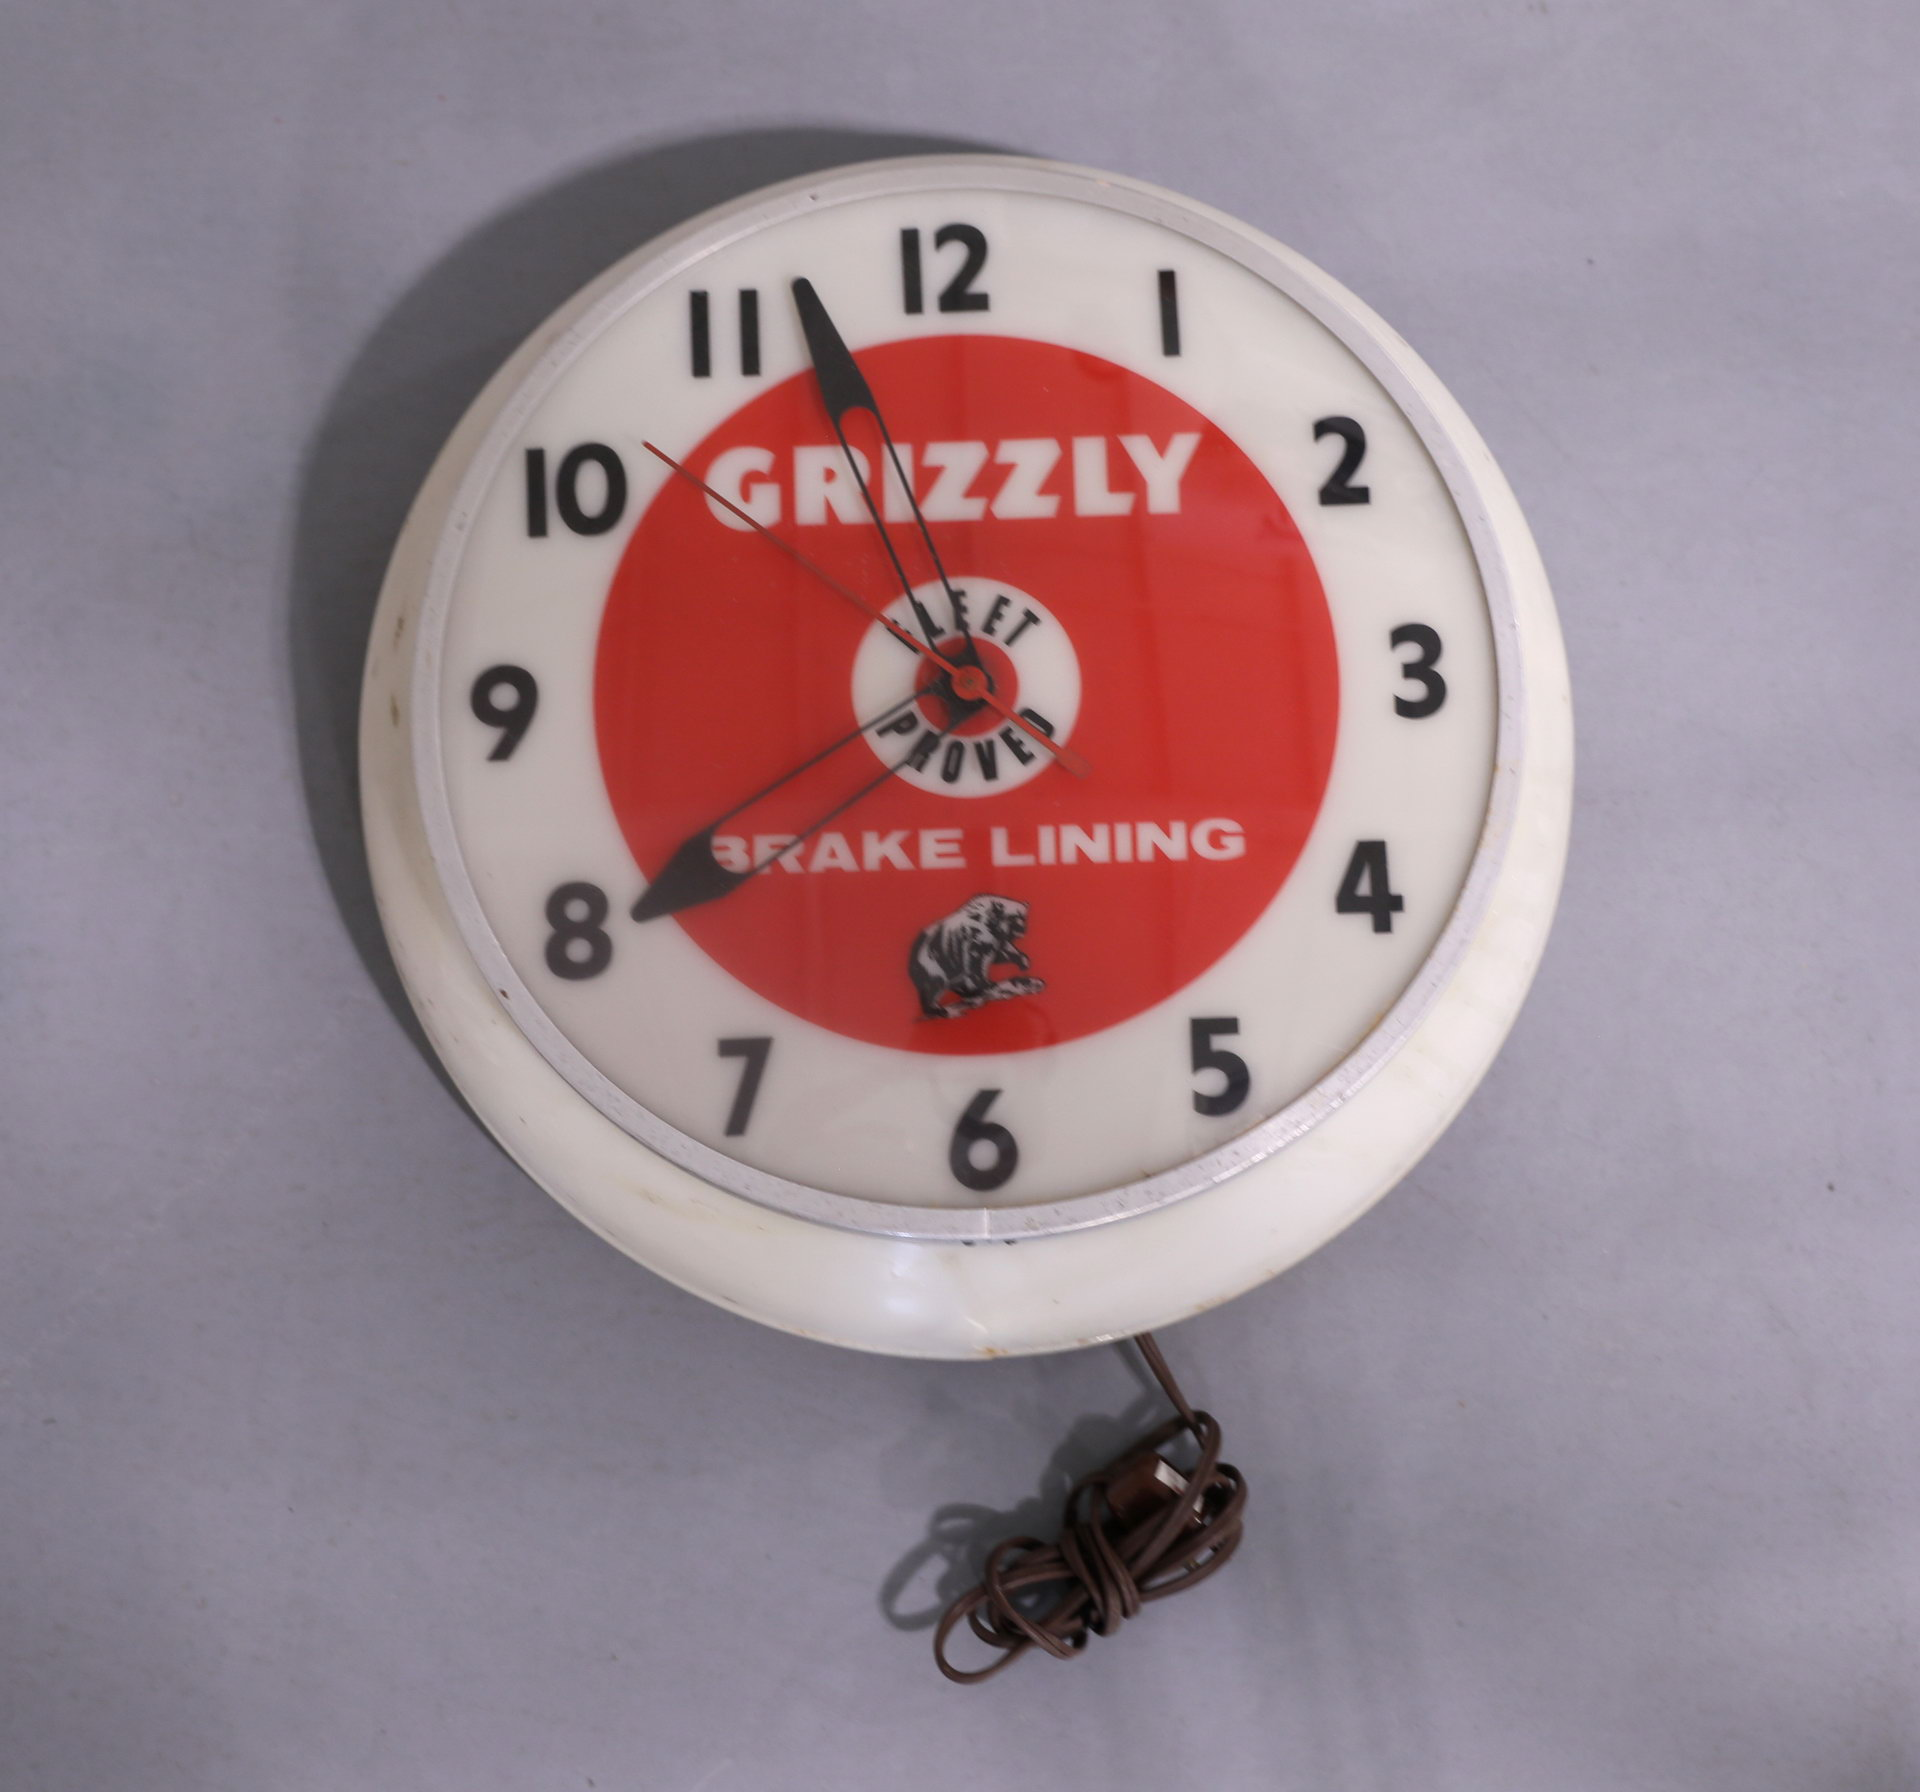 Grizzly Automobile Brakes Bubble Advertising Clock